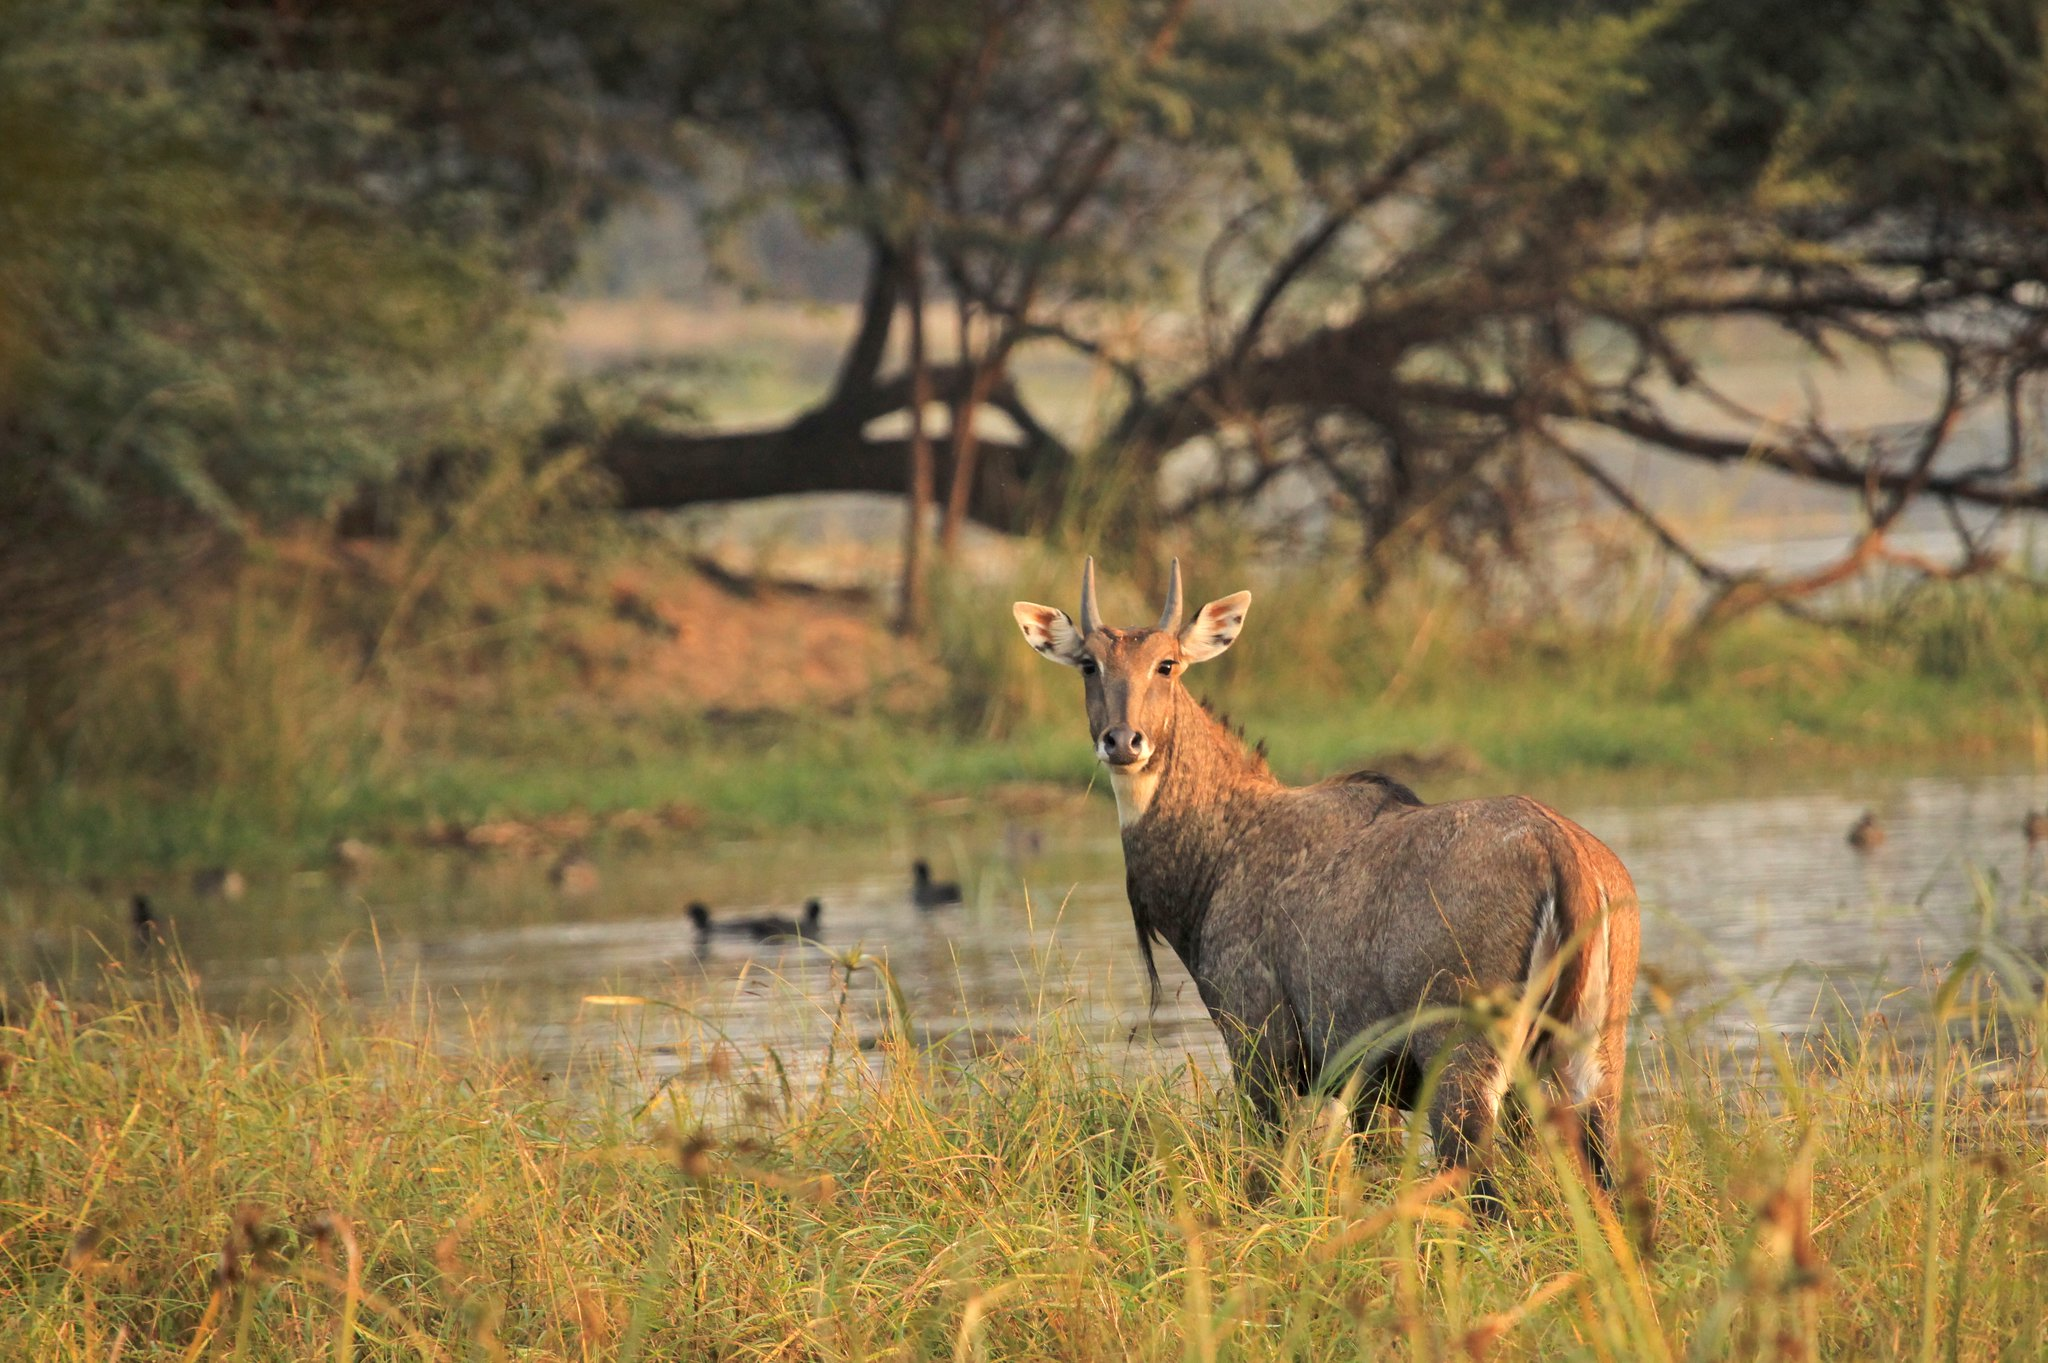 Neelgai at Sultanpur National Park